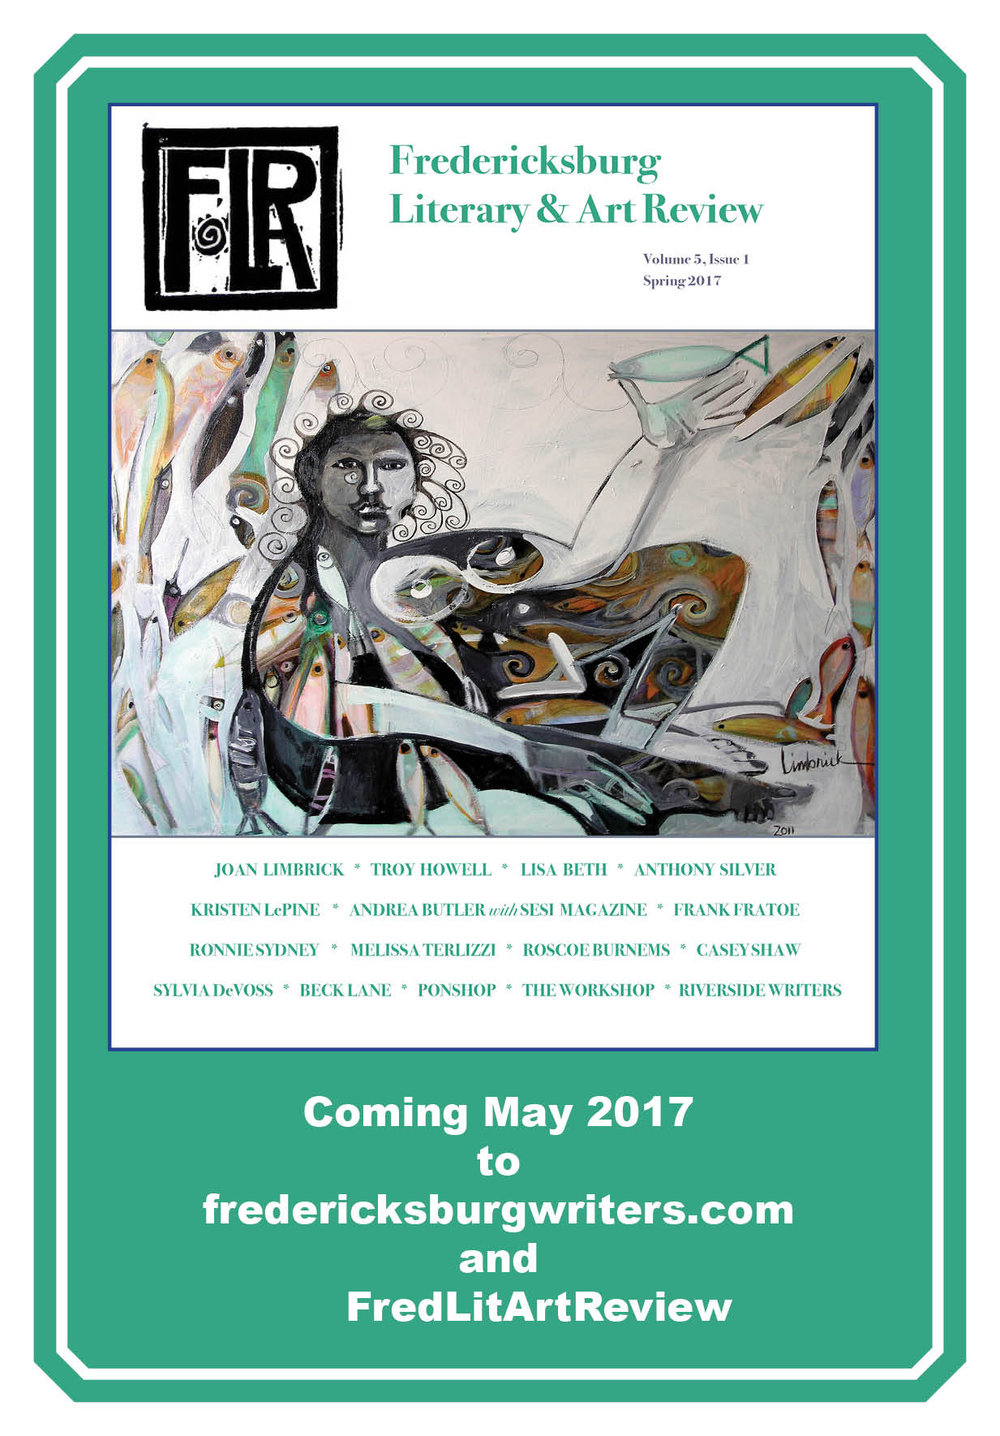 Fredericksburg Literary & Art Review - Volume 5, Issue 1, 2017